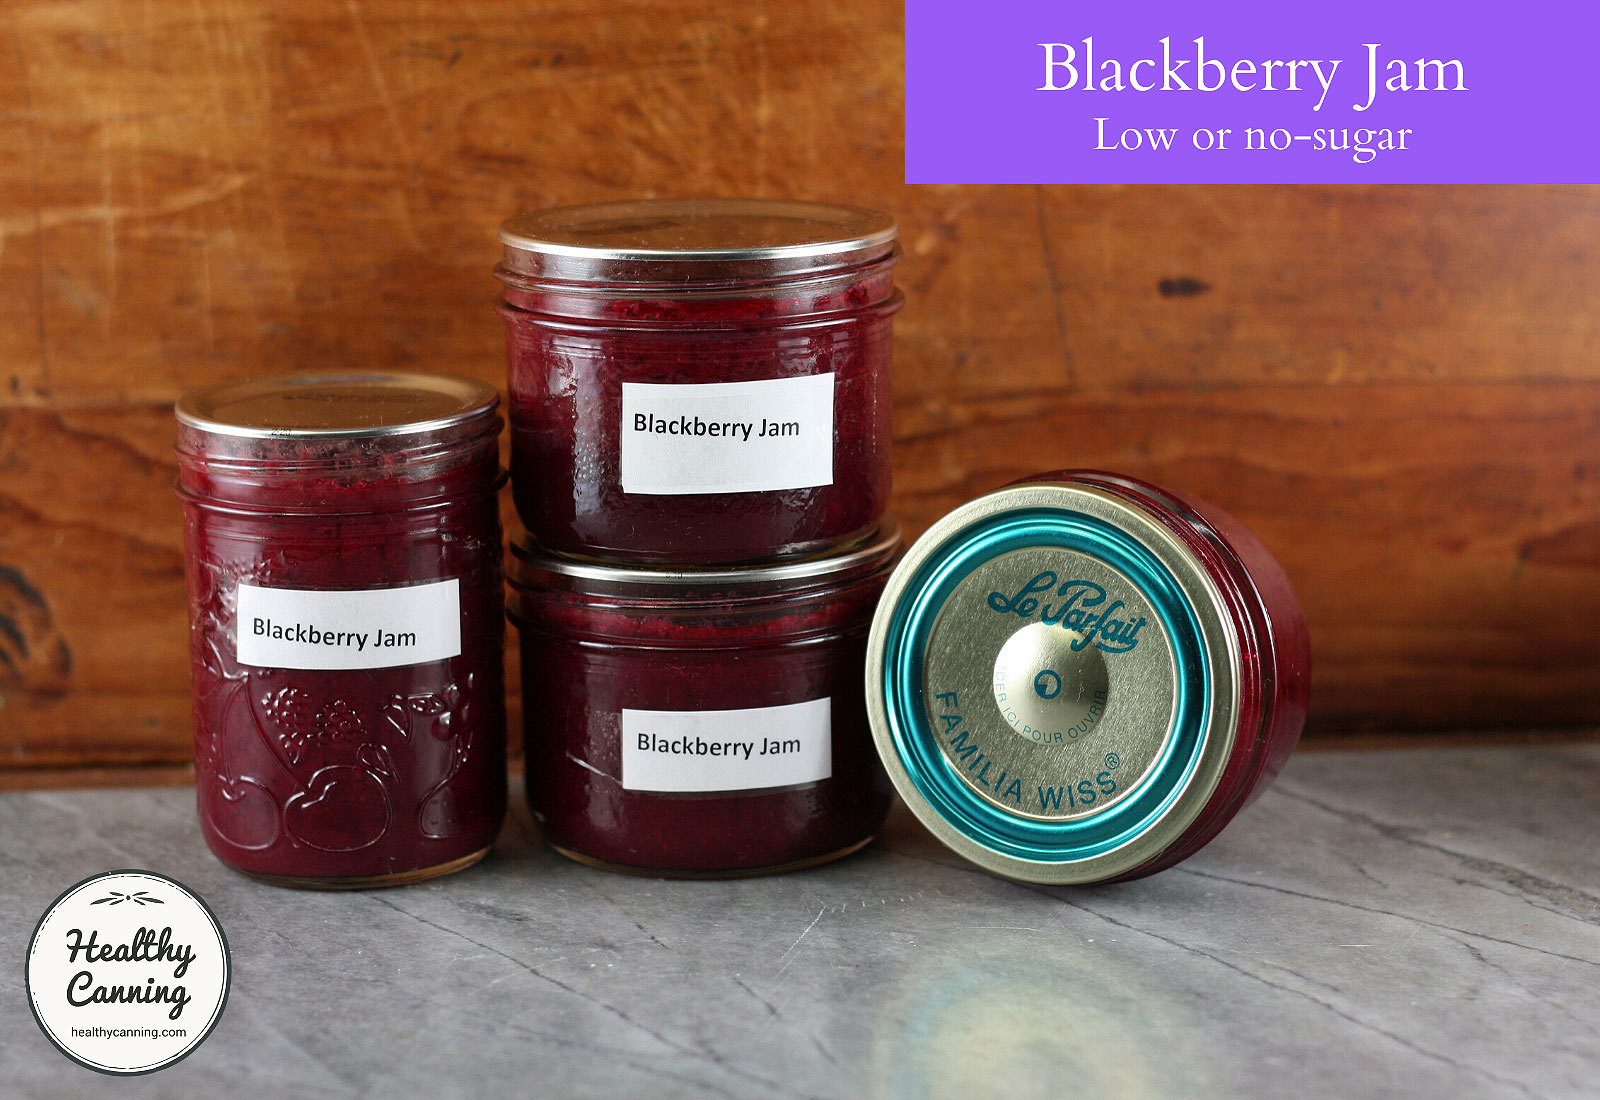 Blackberry jam in jars